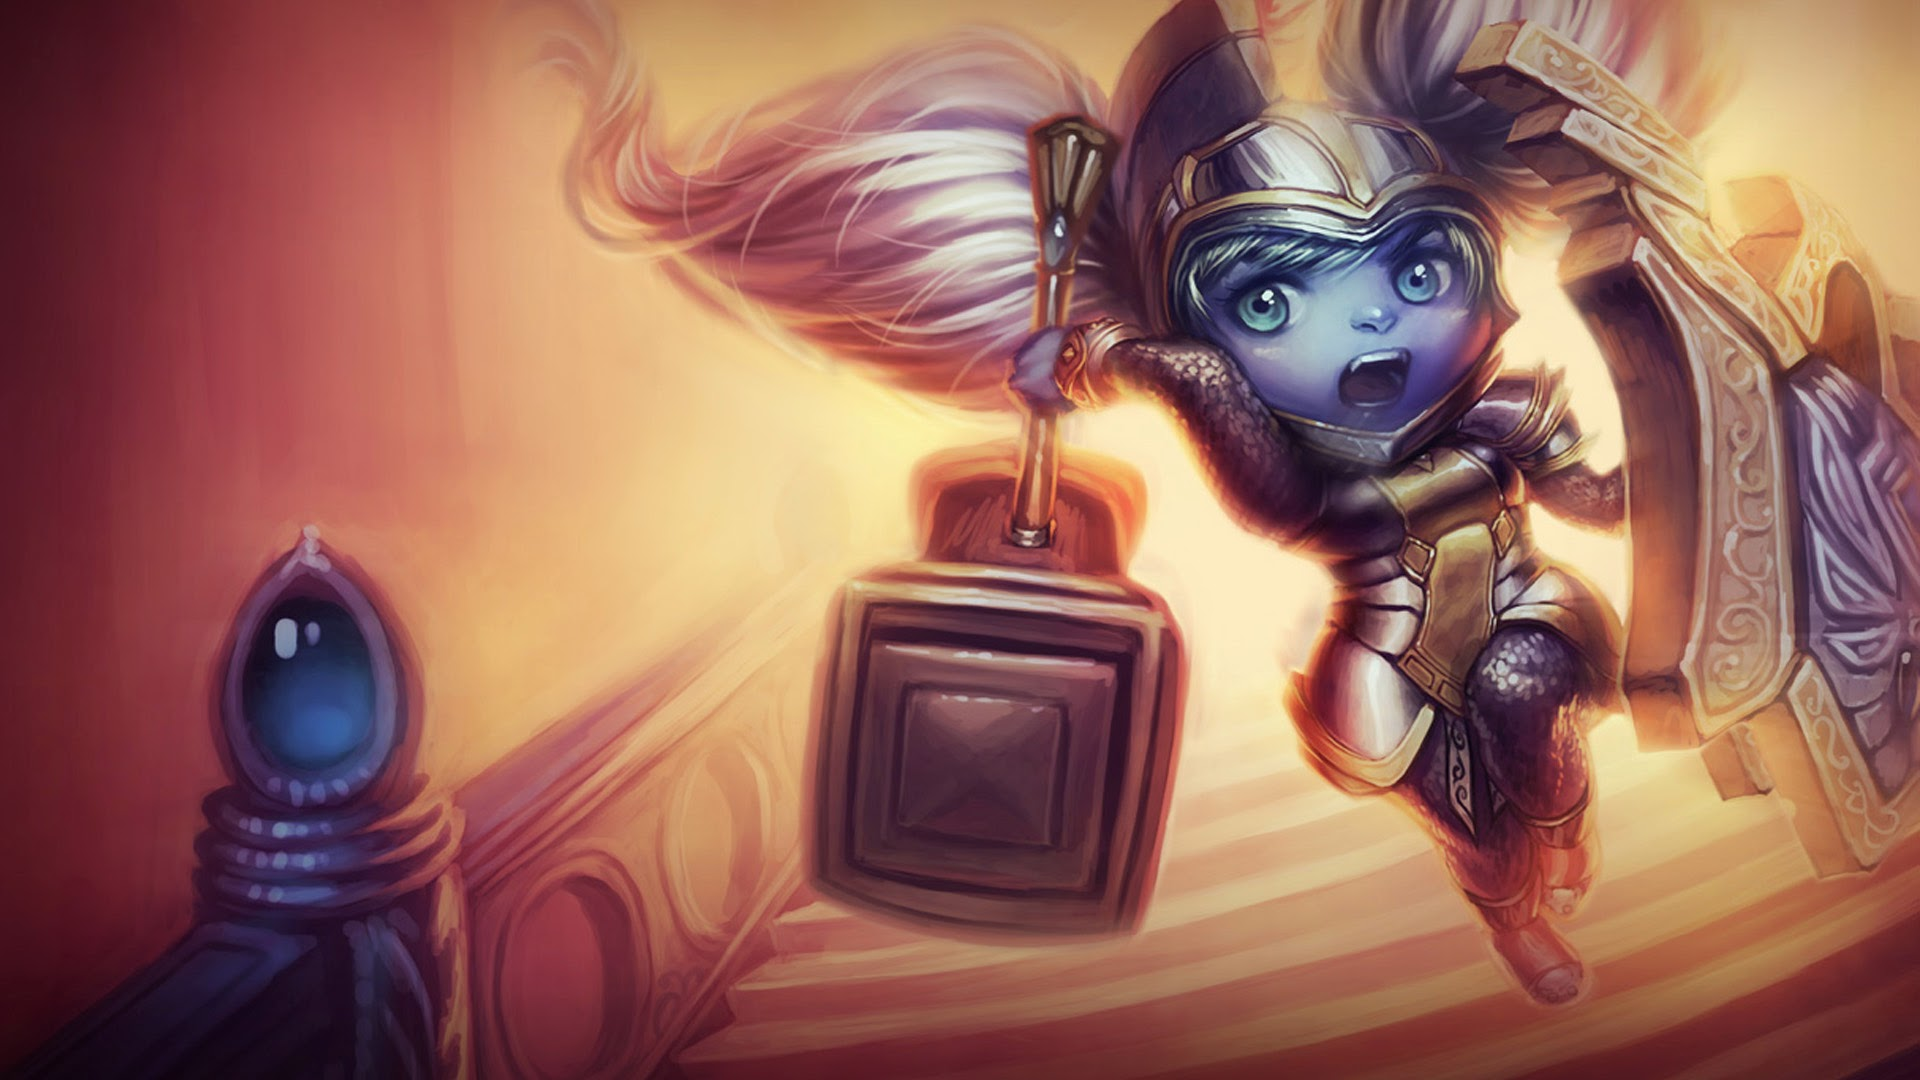 League Of Legends Poppy Wallpaper: This Domain May Be For Sale